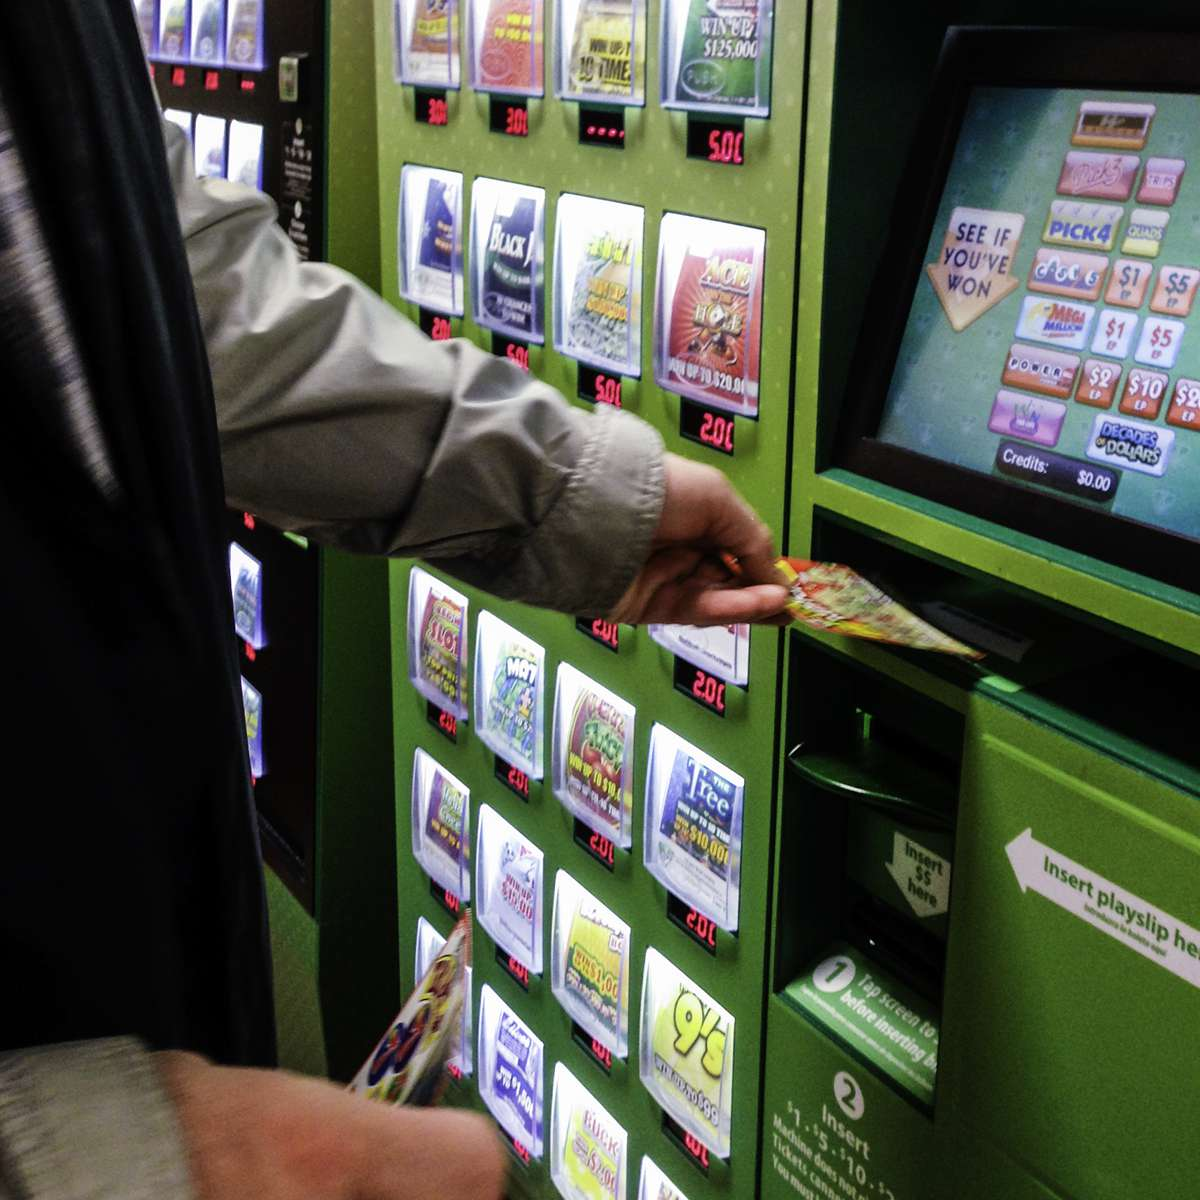 Washington Lottery Games - How to Play and Odds